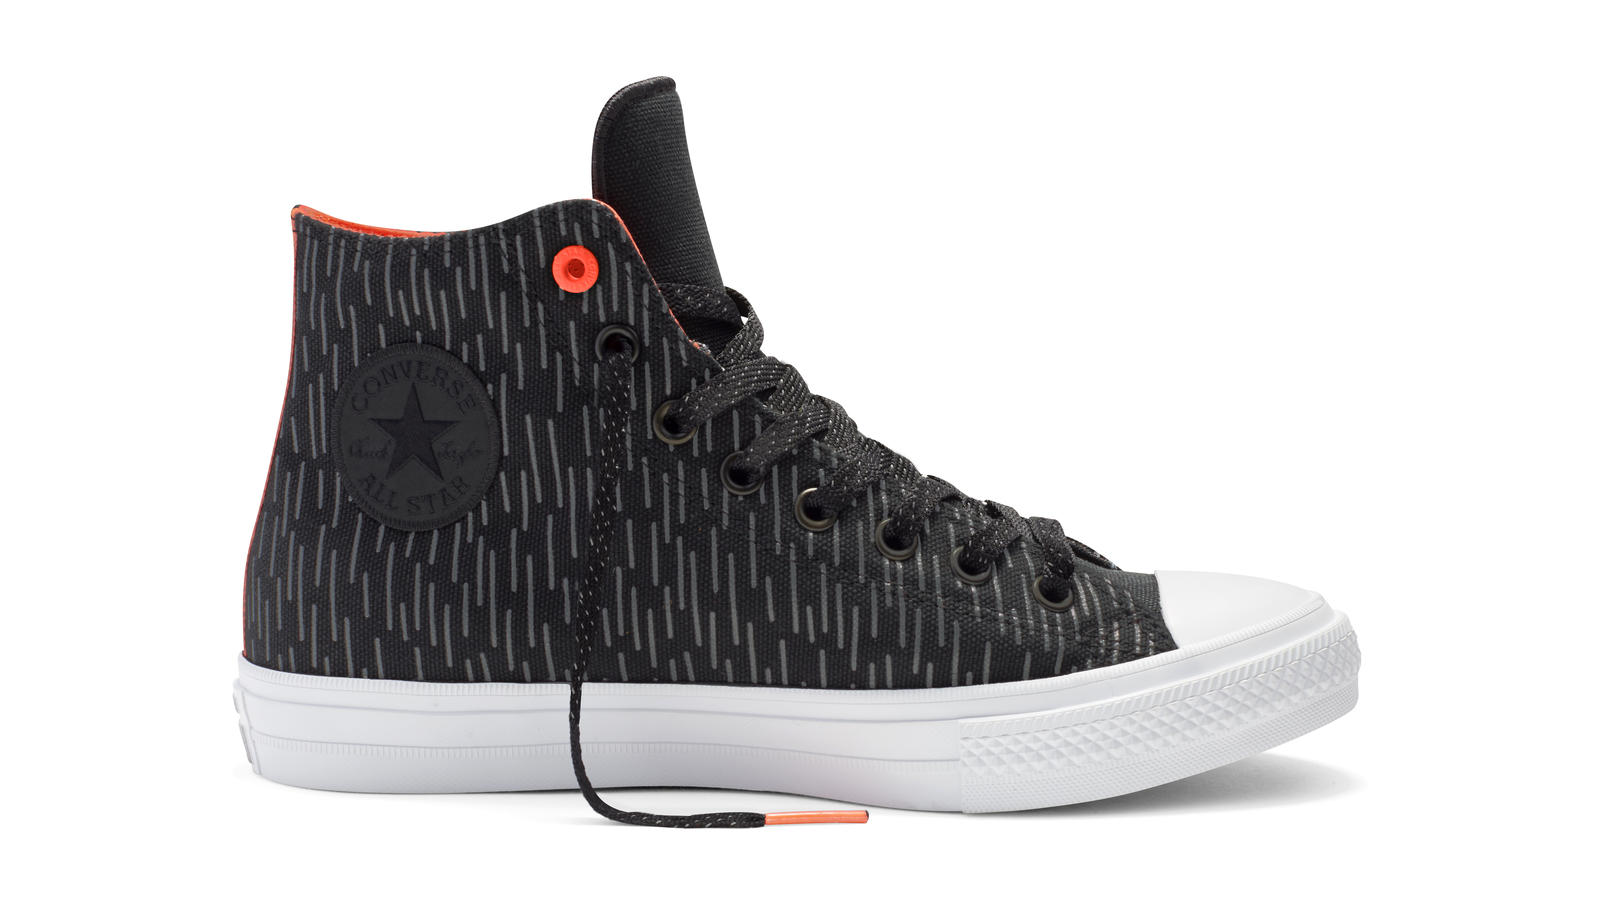 CONVERSE READIES CHUCK TAYLOR ALL STAR II (AND MORE) FOR A